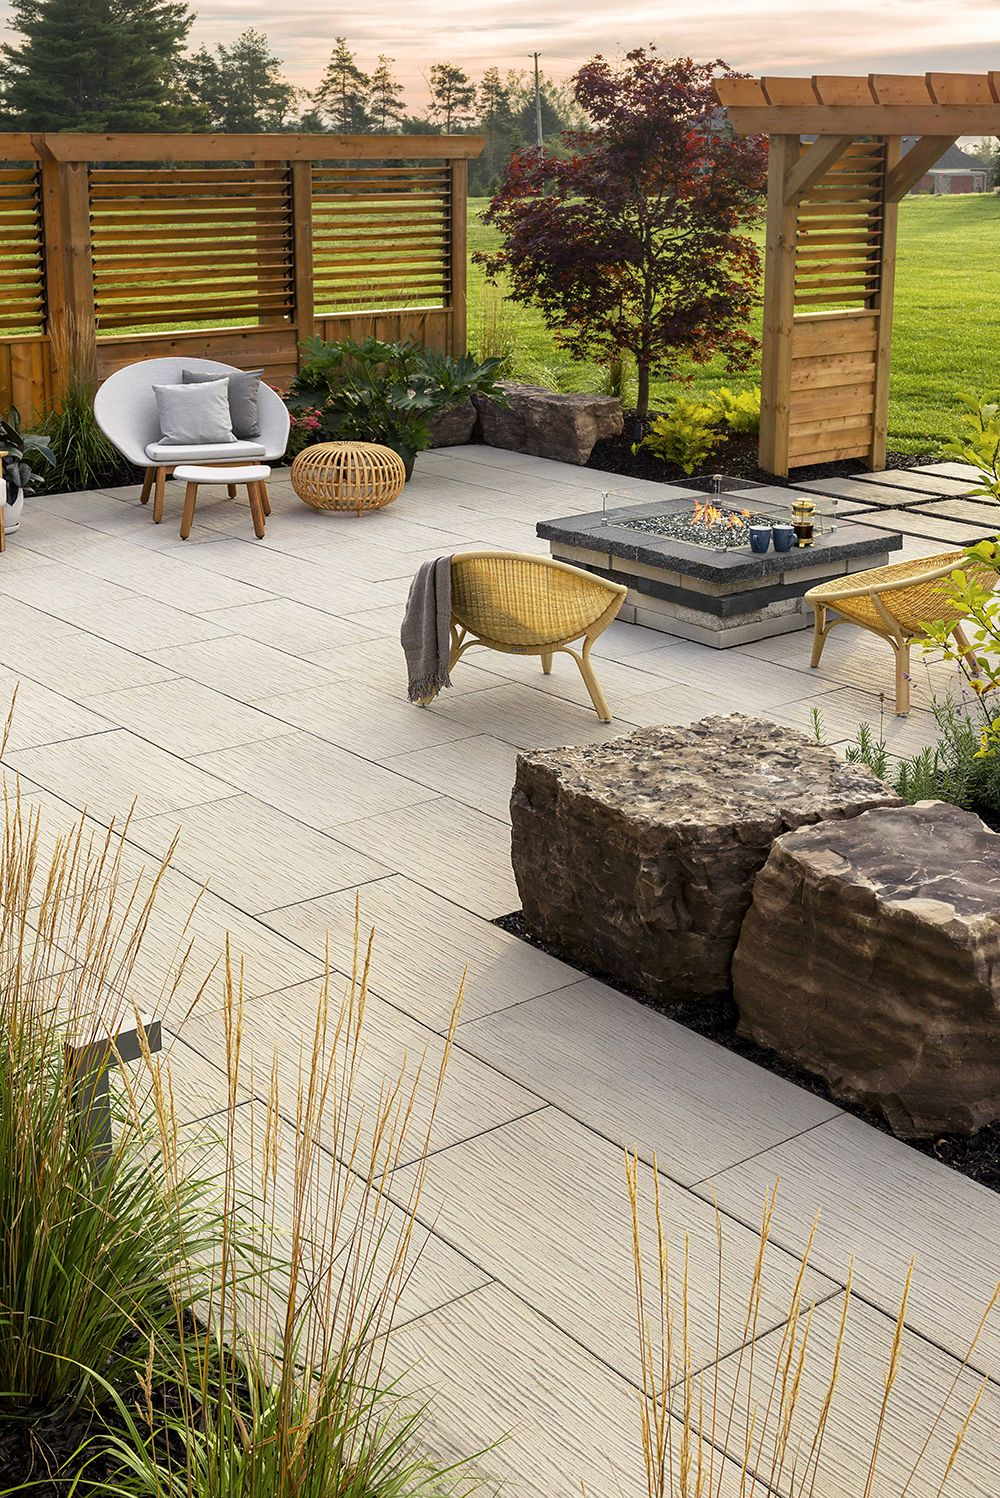 This Backyard Look Is Inspired By Our Ocean Grande Slab This New Patio Slab Is Techo Bloc S Latest Dry Cast Slab Using A New Hig Patio Backyard Patio Backyard